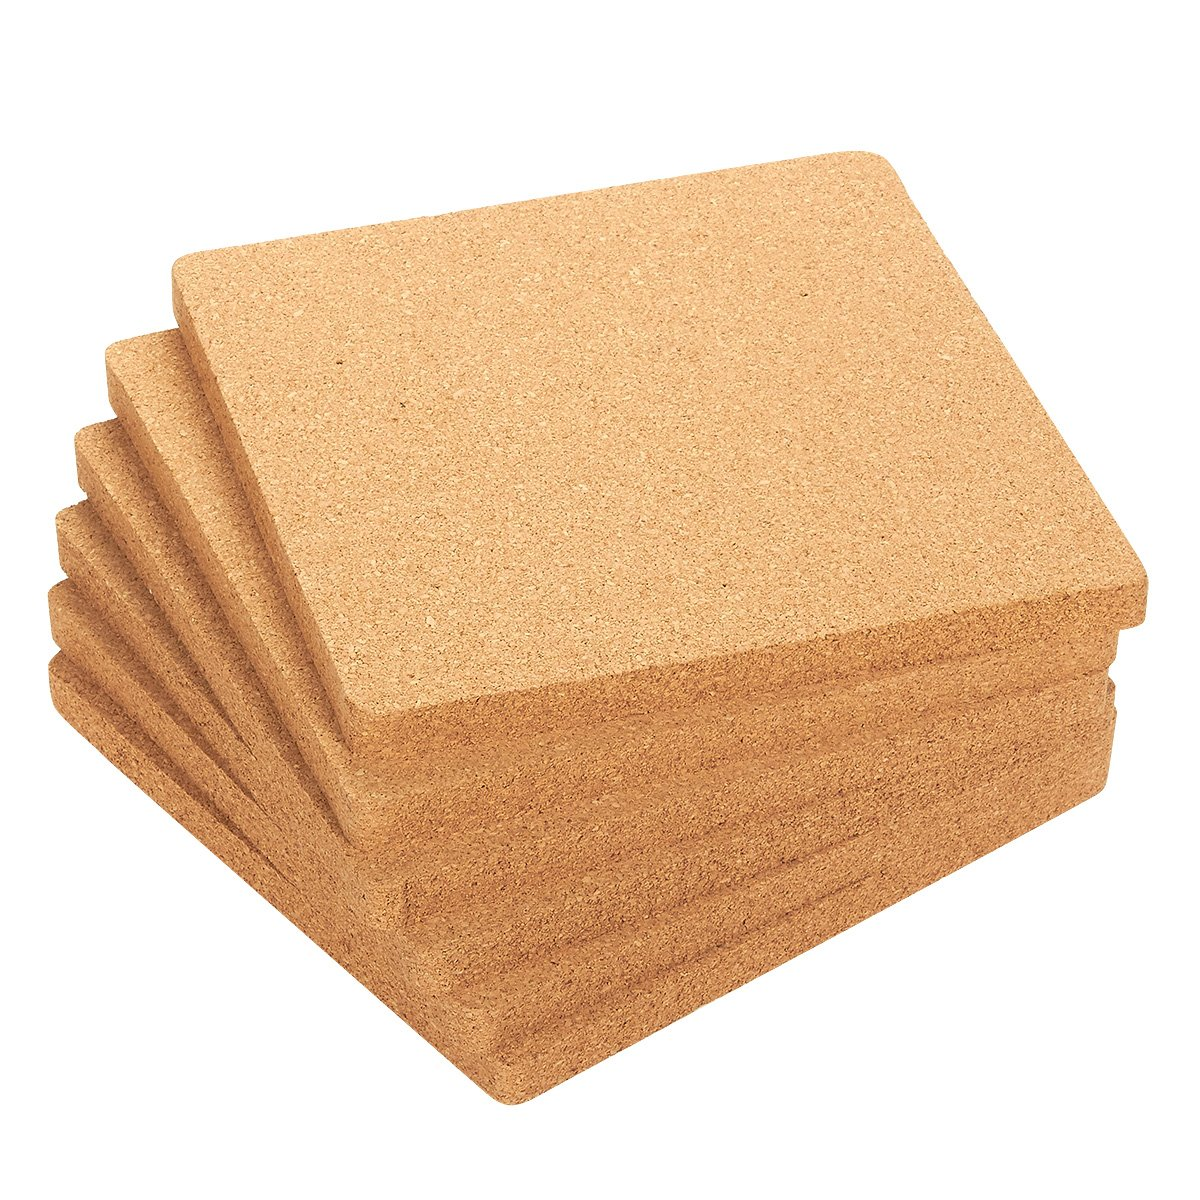 Juvale 6-Pack Cork Trivet Set - Square Corkboard Placemats Kitchen Hot Pads for Hot Pots, Pans, and Kettles, 7 x 7 x 0.5 Inches